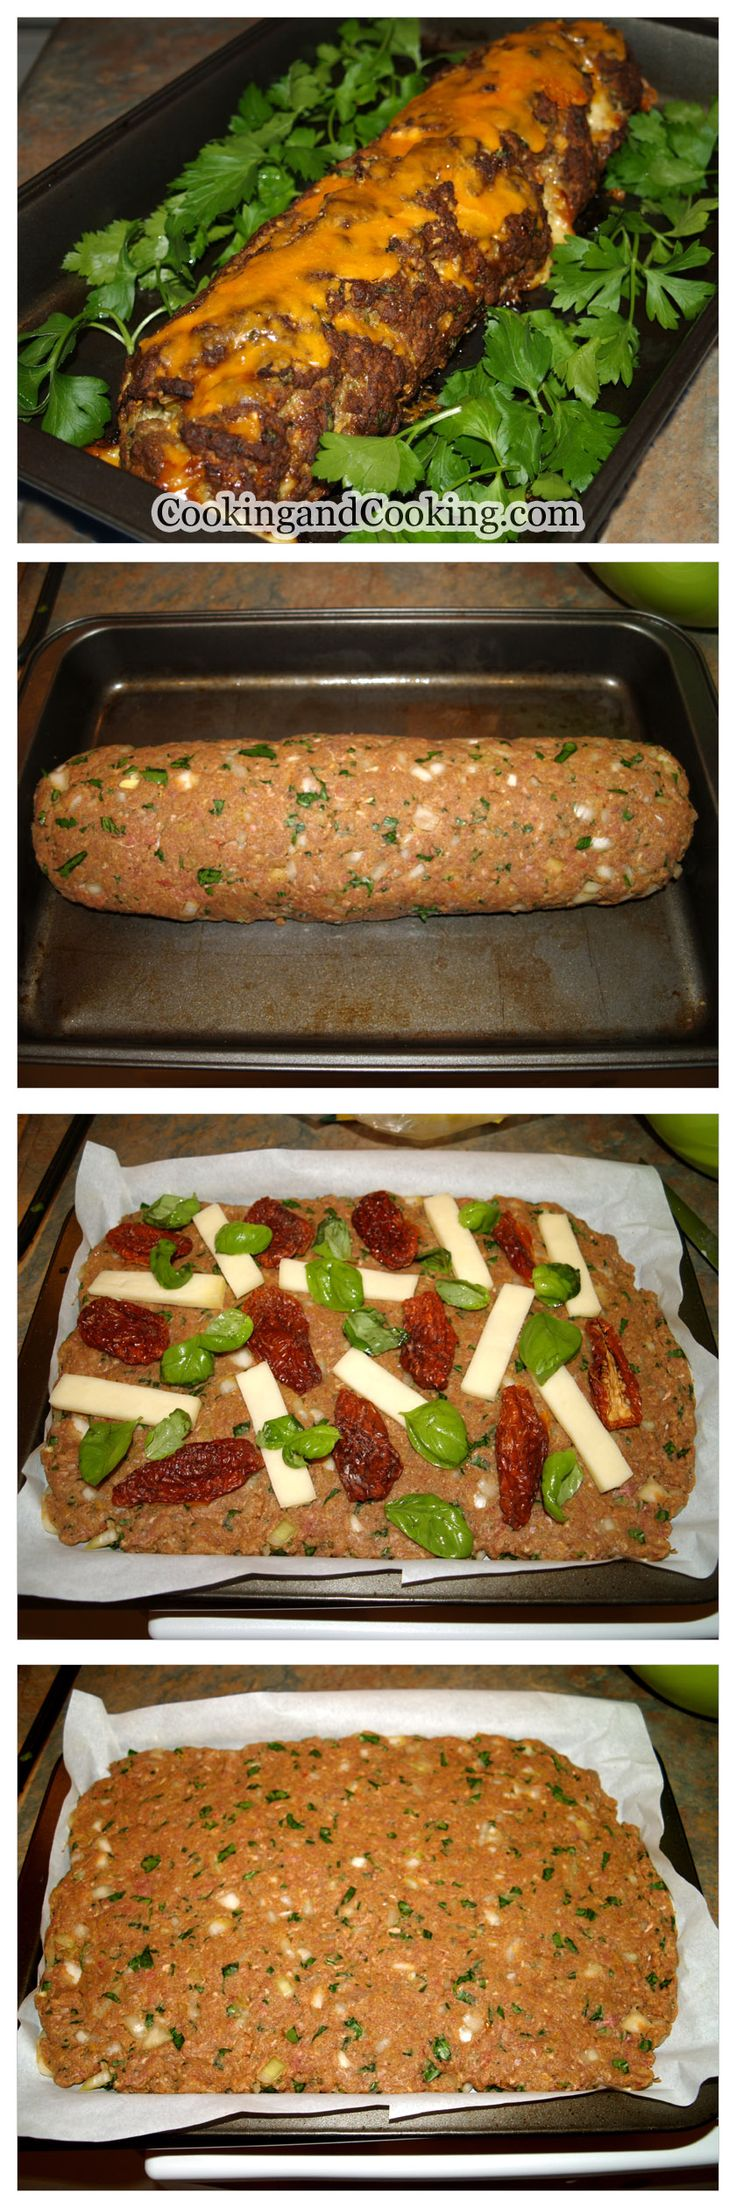 his easy-to-follow recipe for flavorful cheesy stuffed meatloaf is made with a combination of lean ground beef, fresh parsley, fresh basil, bread-crumbs, Worcestershire sauce, egg, Mozzarella and spices. Serve this stuffed meatloaf with mashed potato or steamed vegetables and any kind of tomato sauce you like.